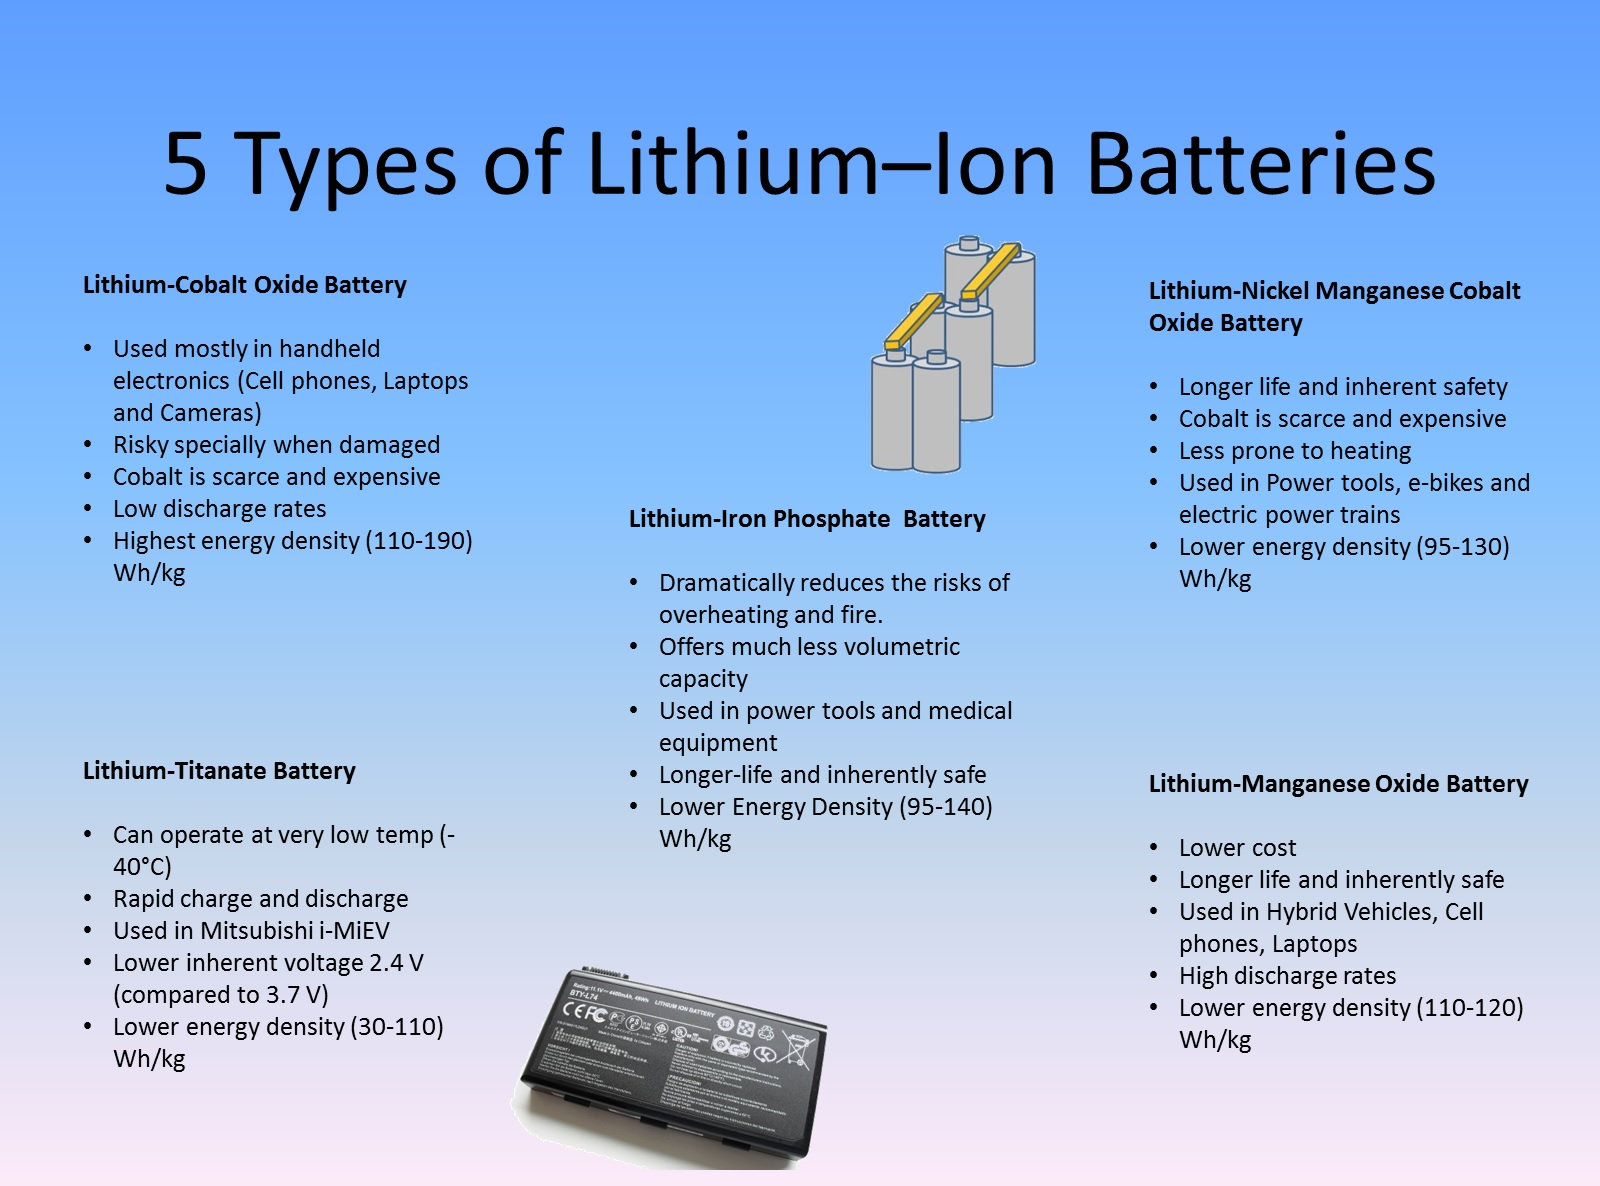 5 Types of Lithium Ion Batteries